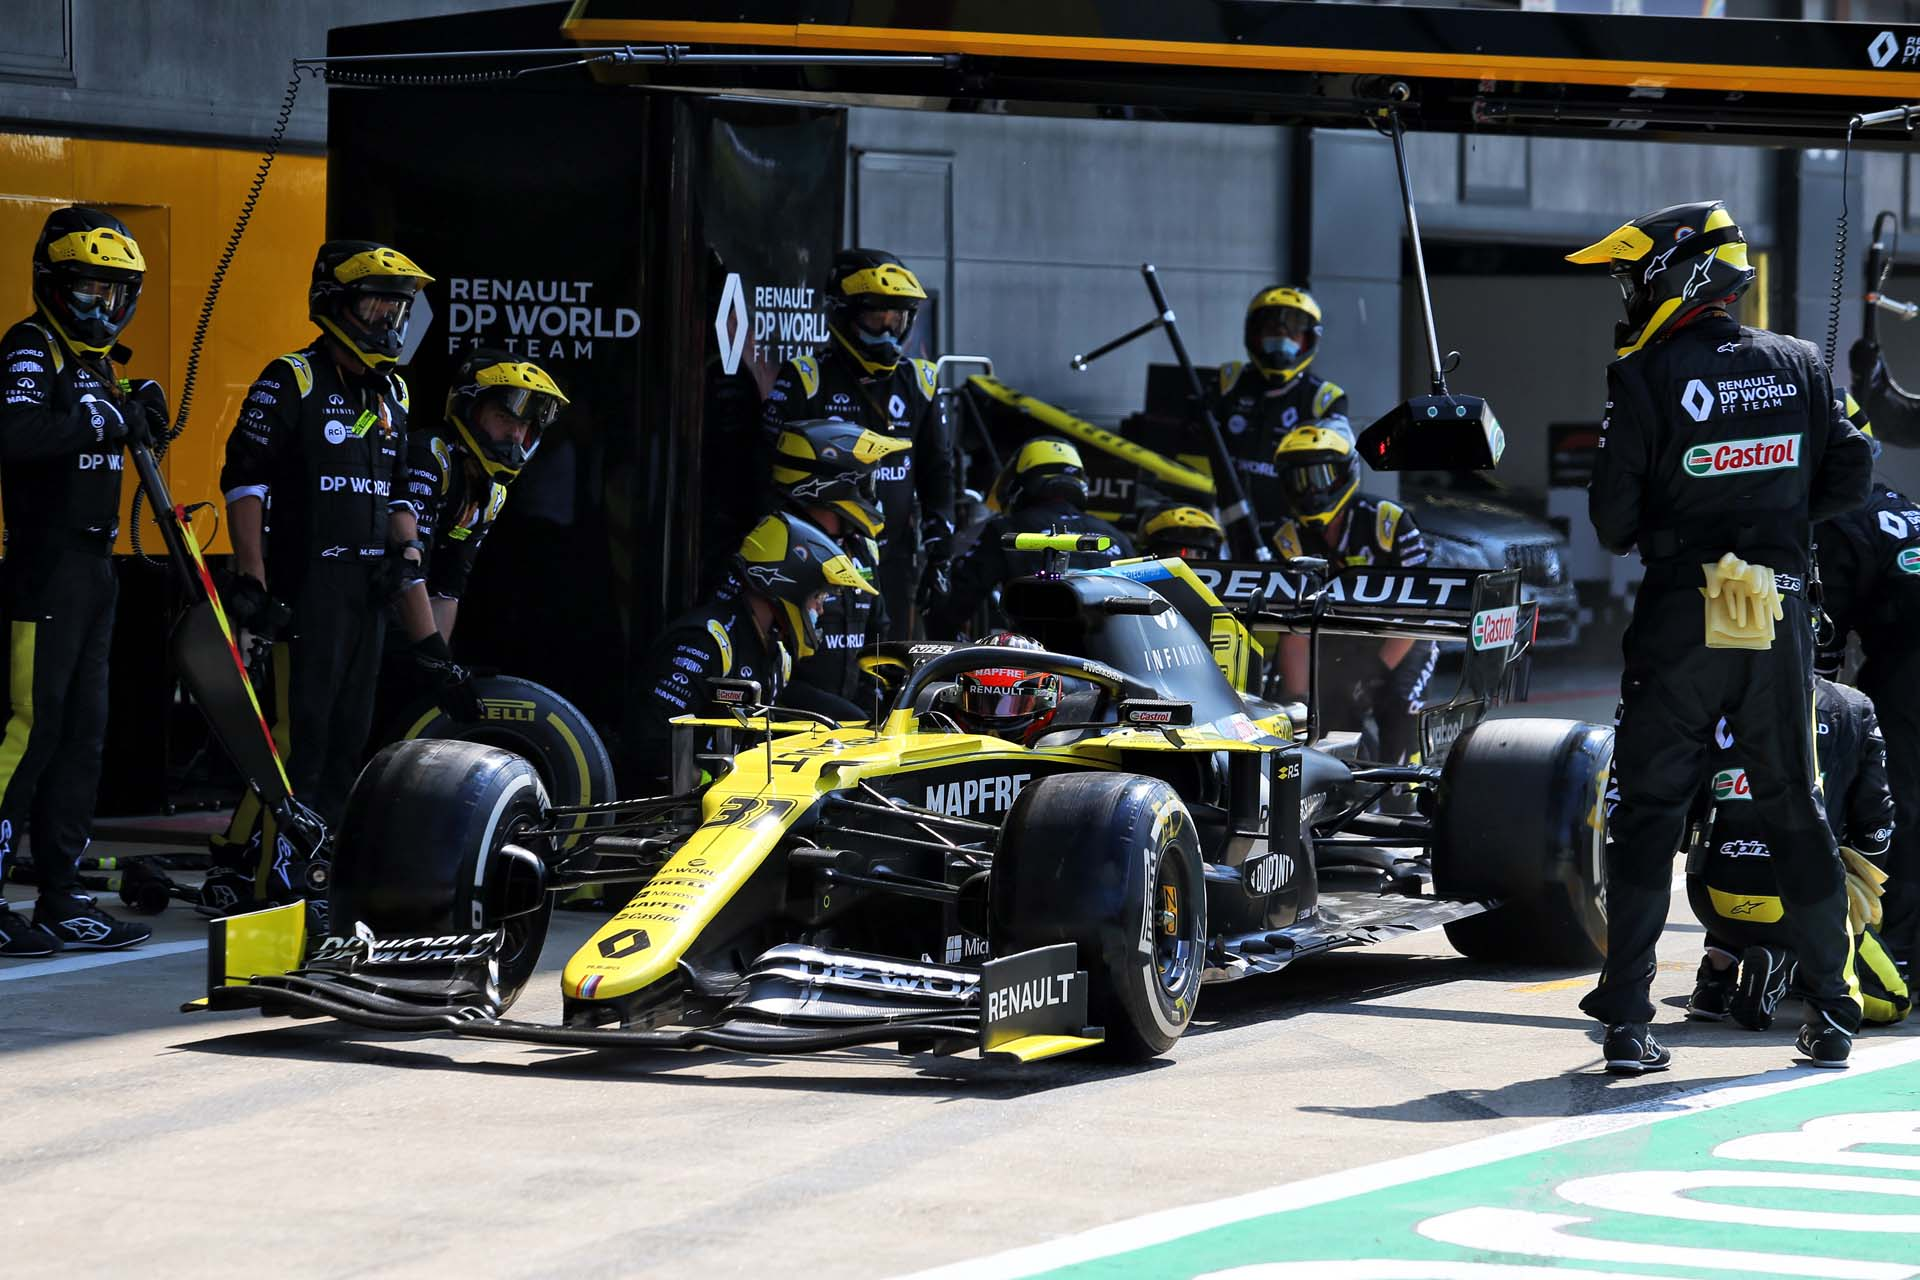 Motor Racing - Formula One World Championship - 70th Anniversary Grand Prix - Race Day - Silverstone, England